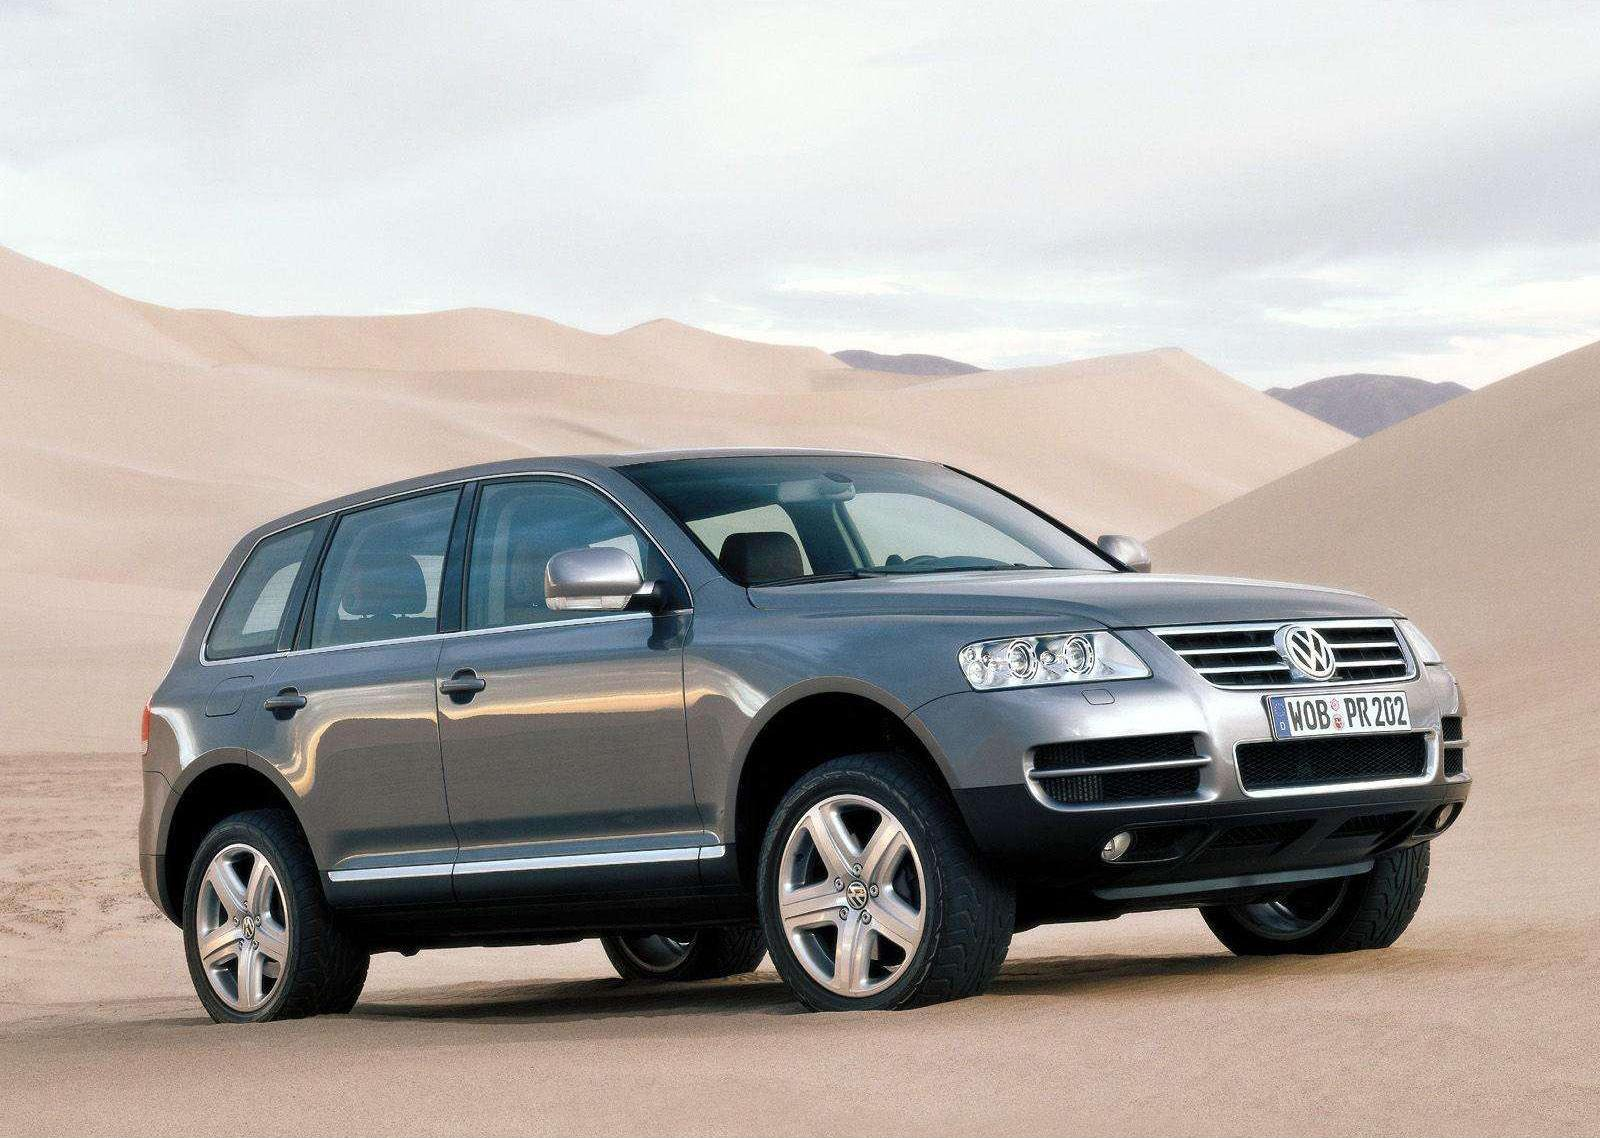 Volkswagen Touareg 4motion Awd System A Comprehensive Review Youwheel Com Your Ultimate And Professional Car Resources